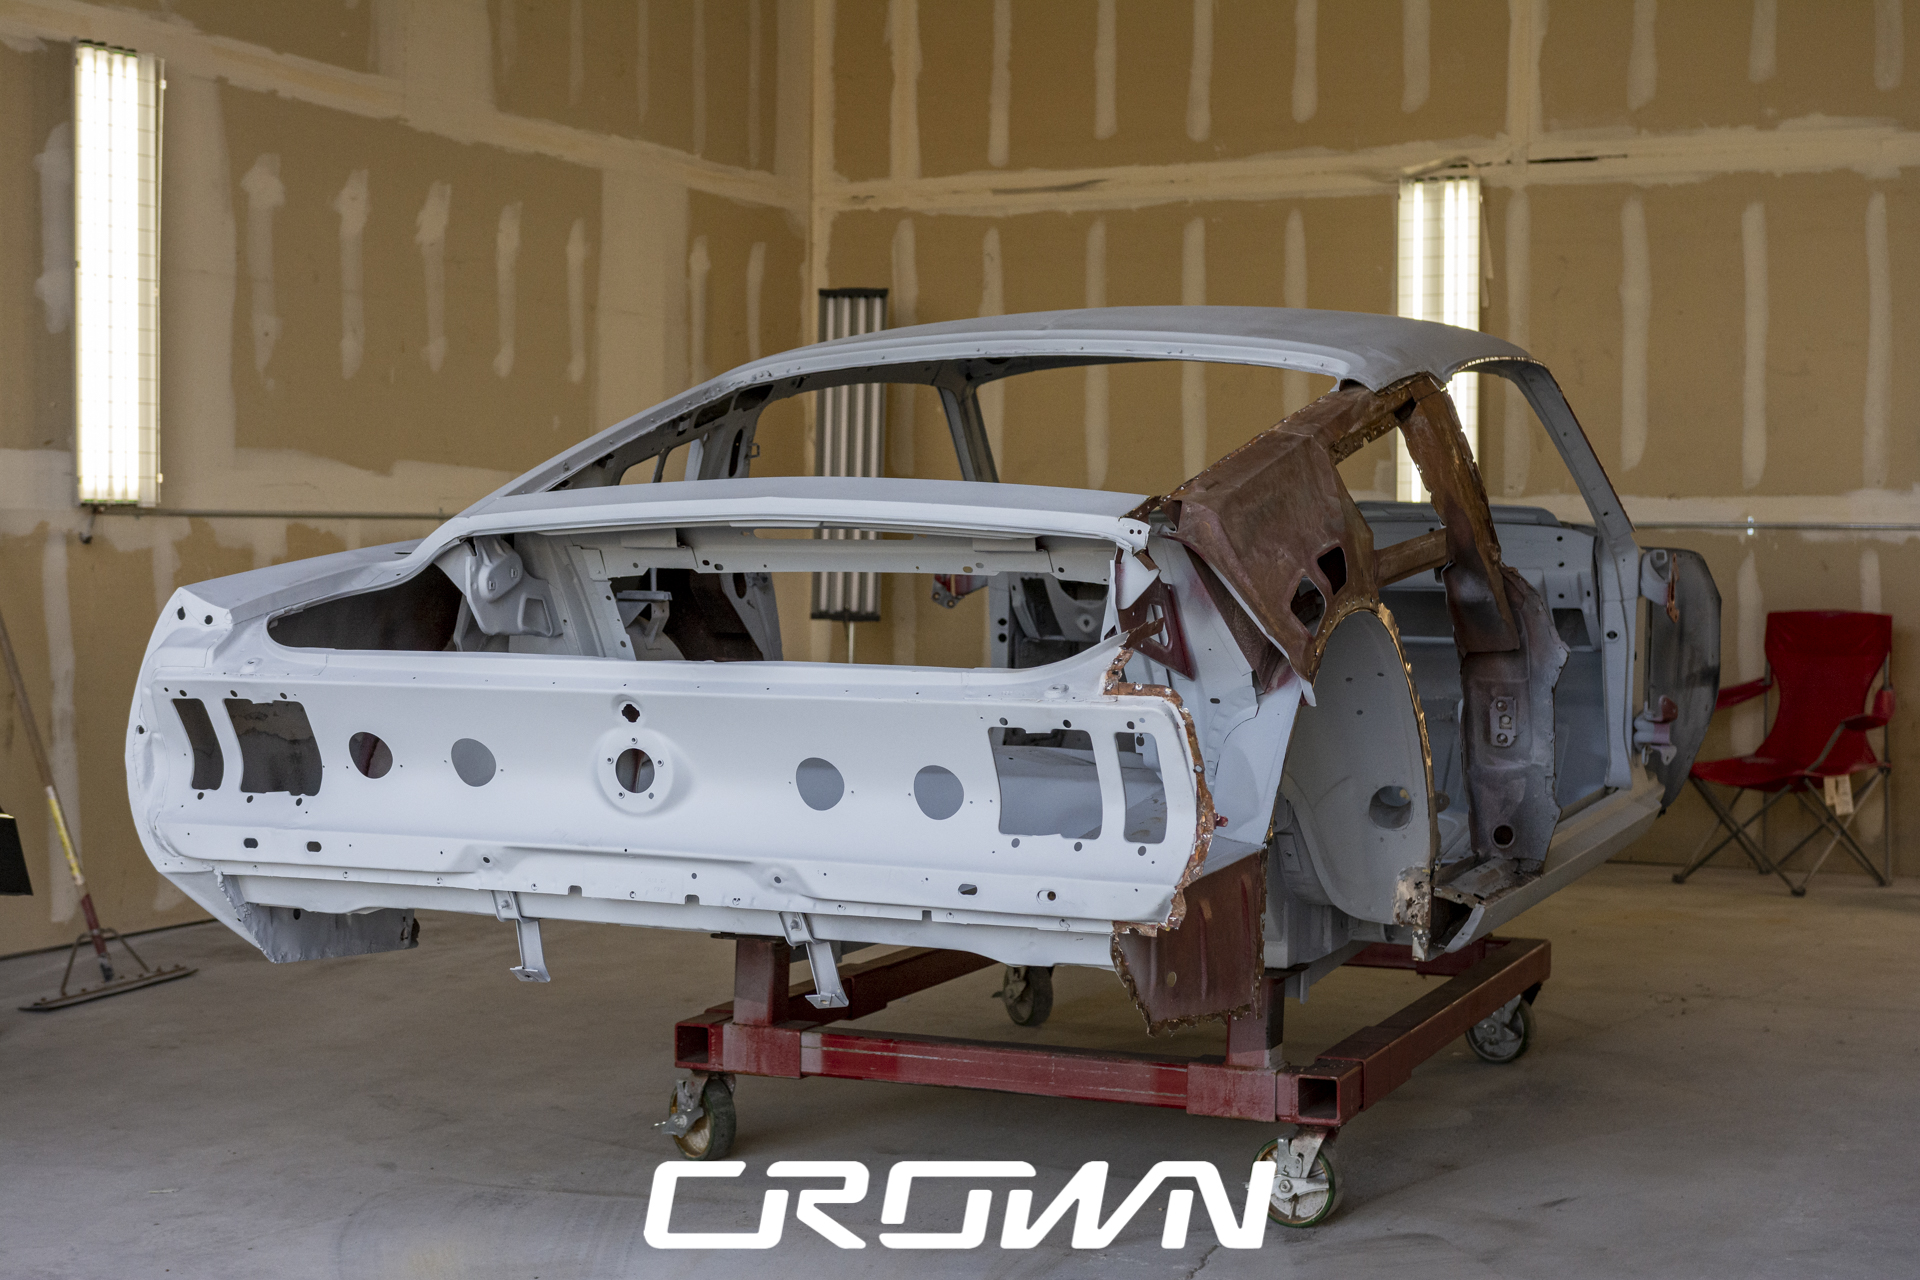 1968 Shelby GT500 Restoration: Body and Paint